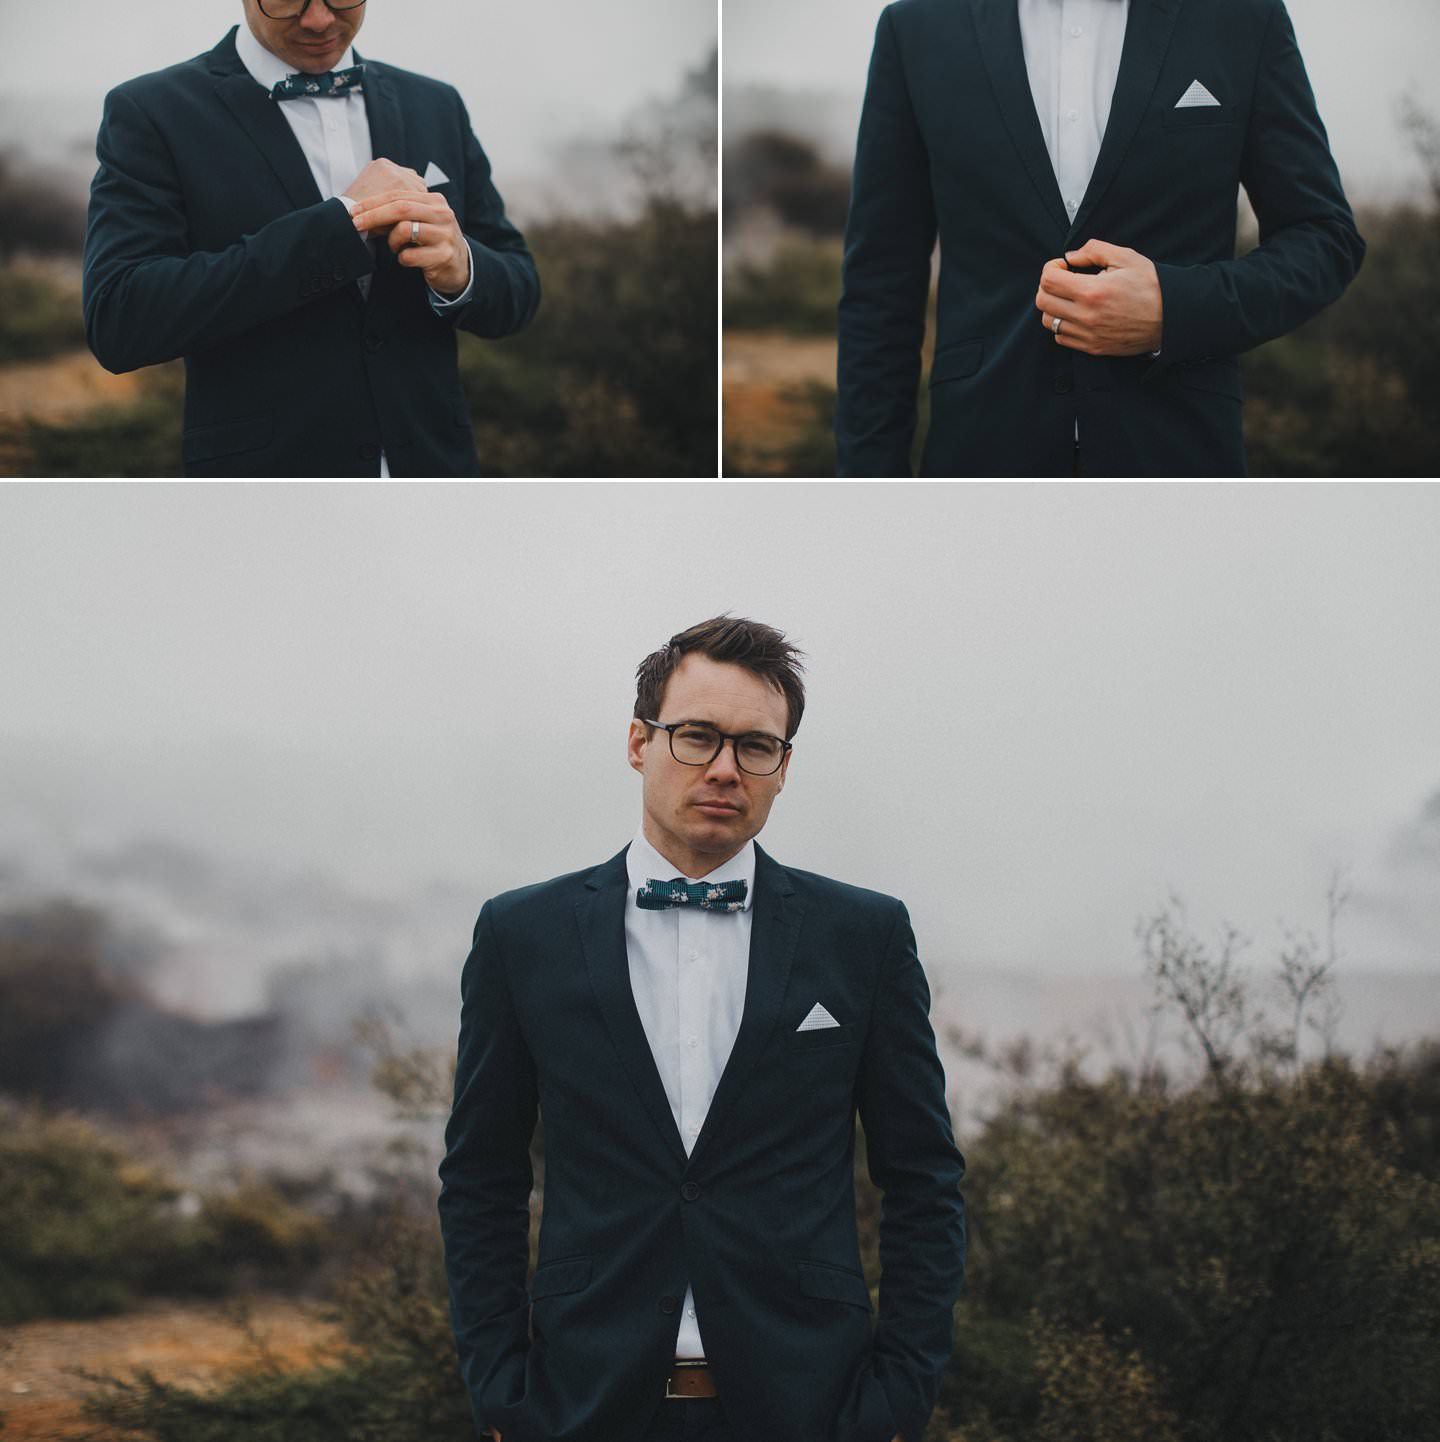 Stylish wedding suits for men. Groom bow tie by Toby and Tim